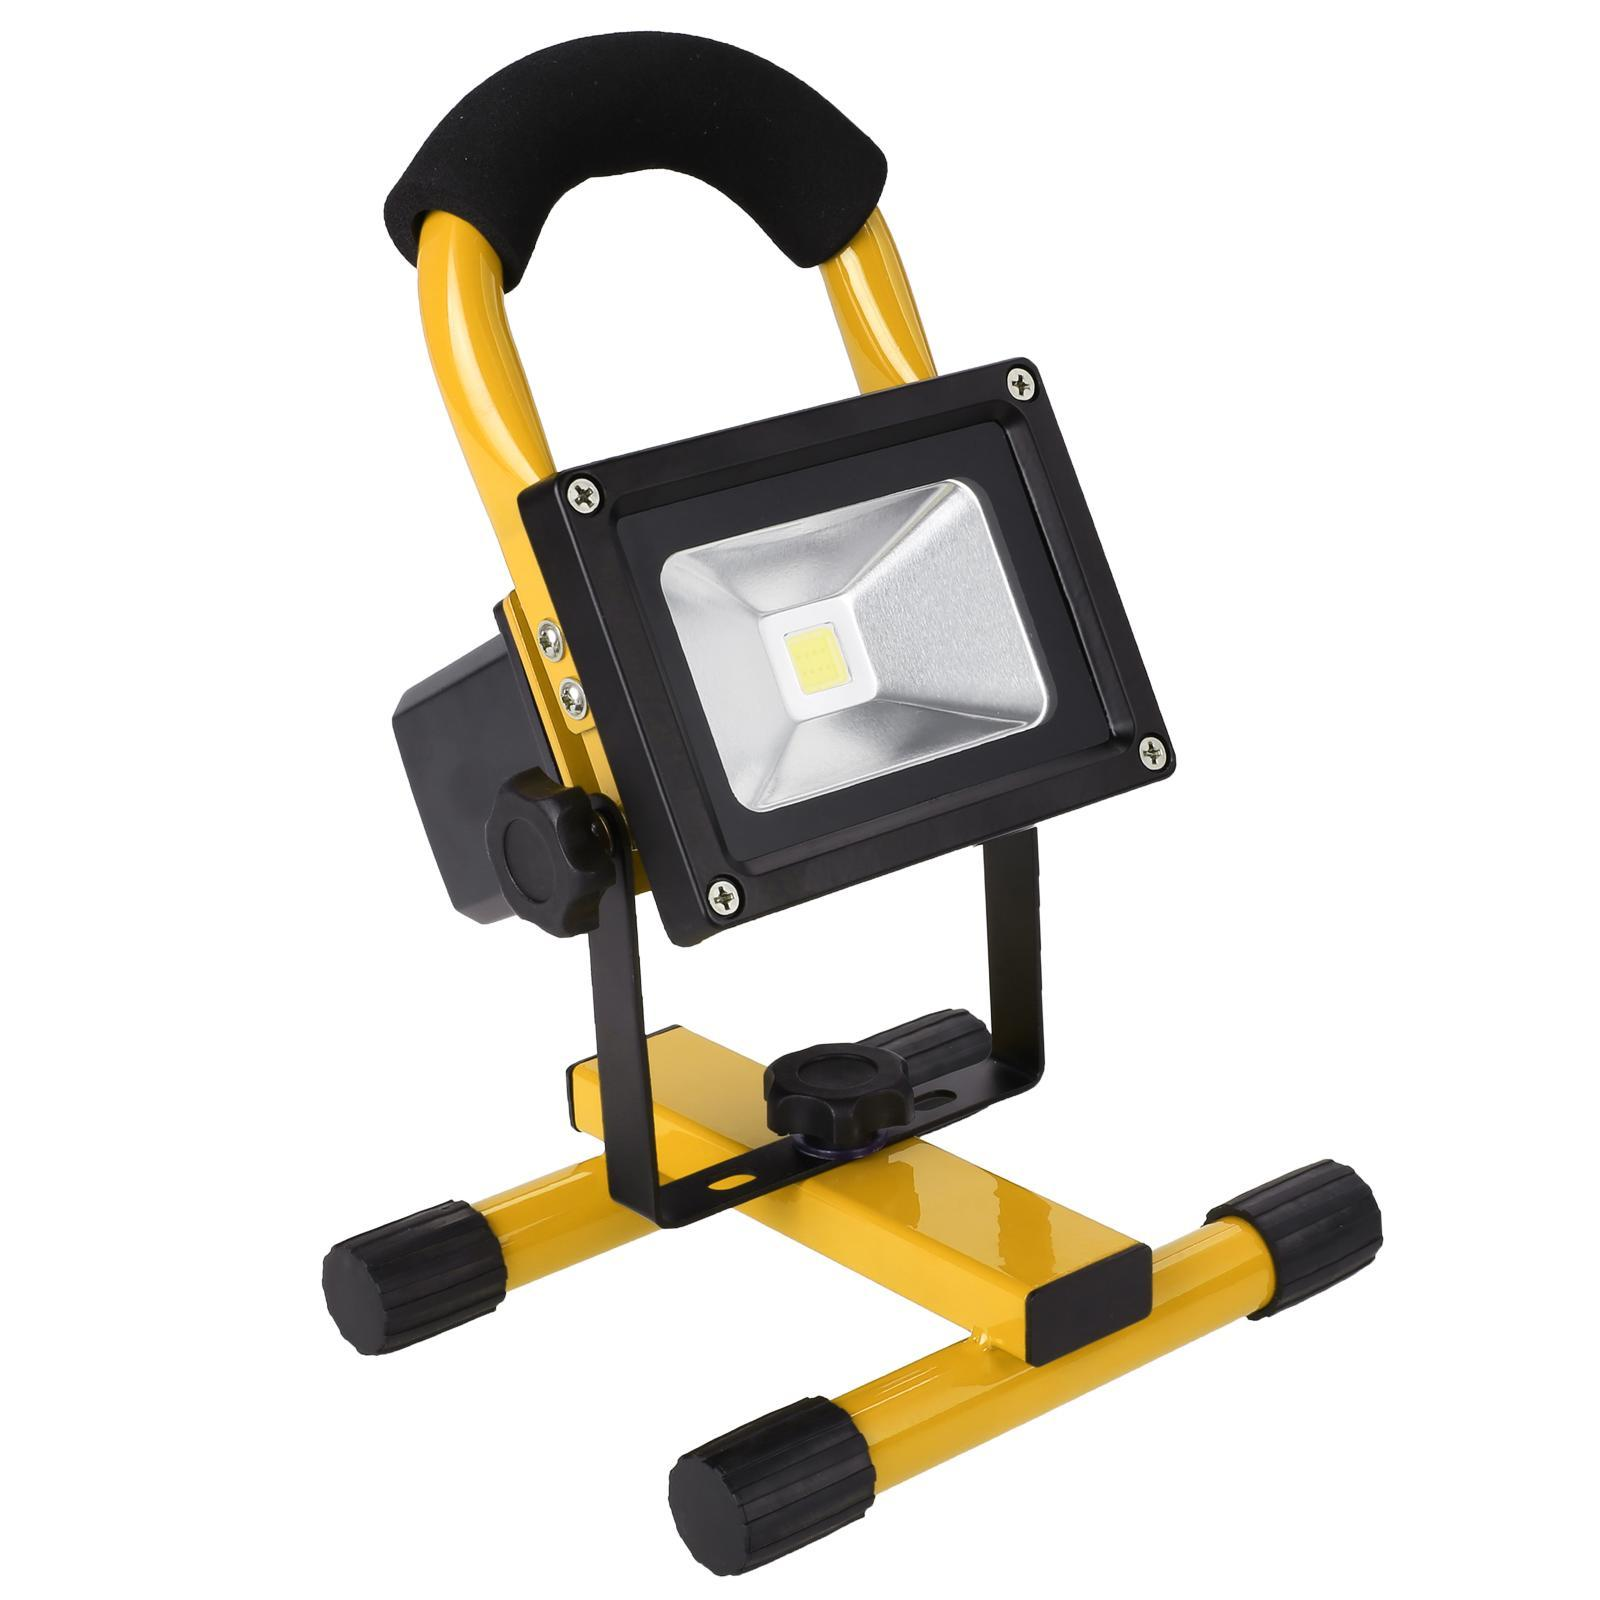 Wireless Rechargeable LED Flood Light, Outdoor Camping Hiking Lamp US Plug  HPPY